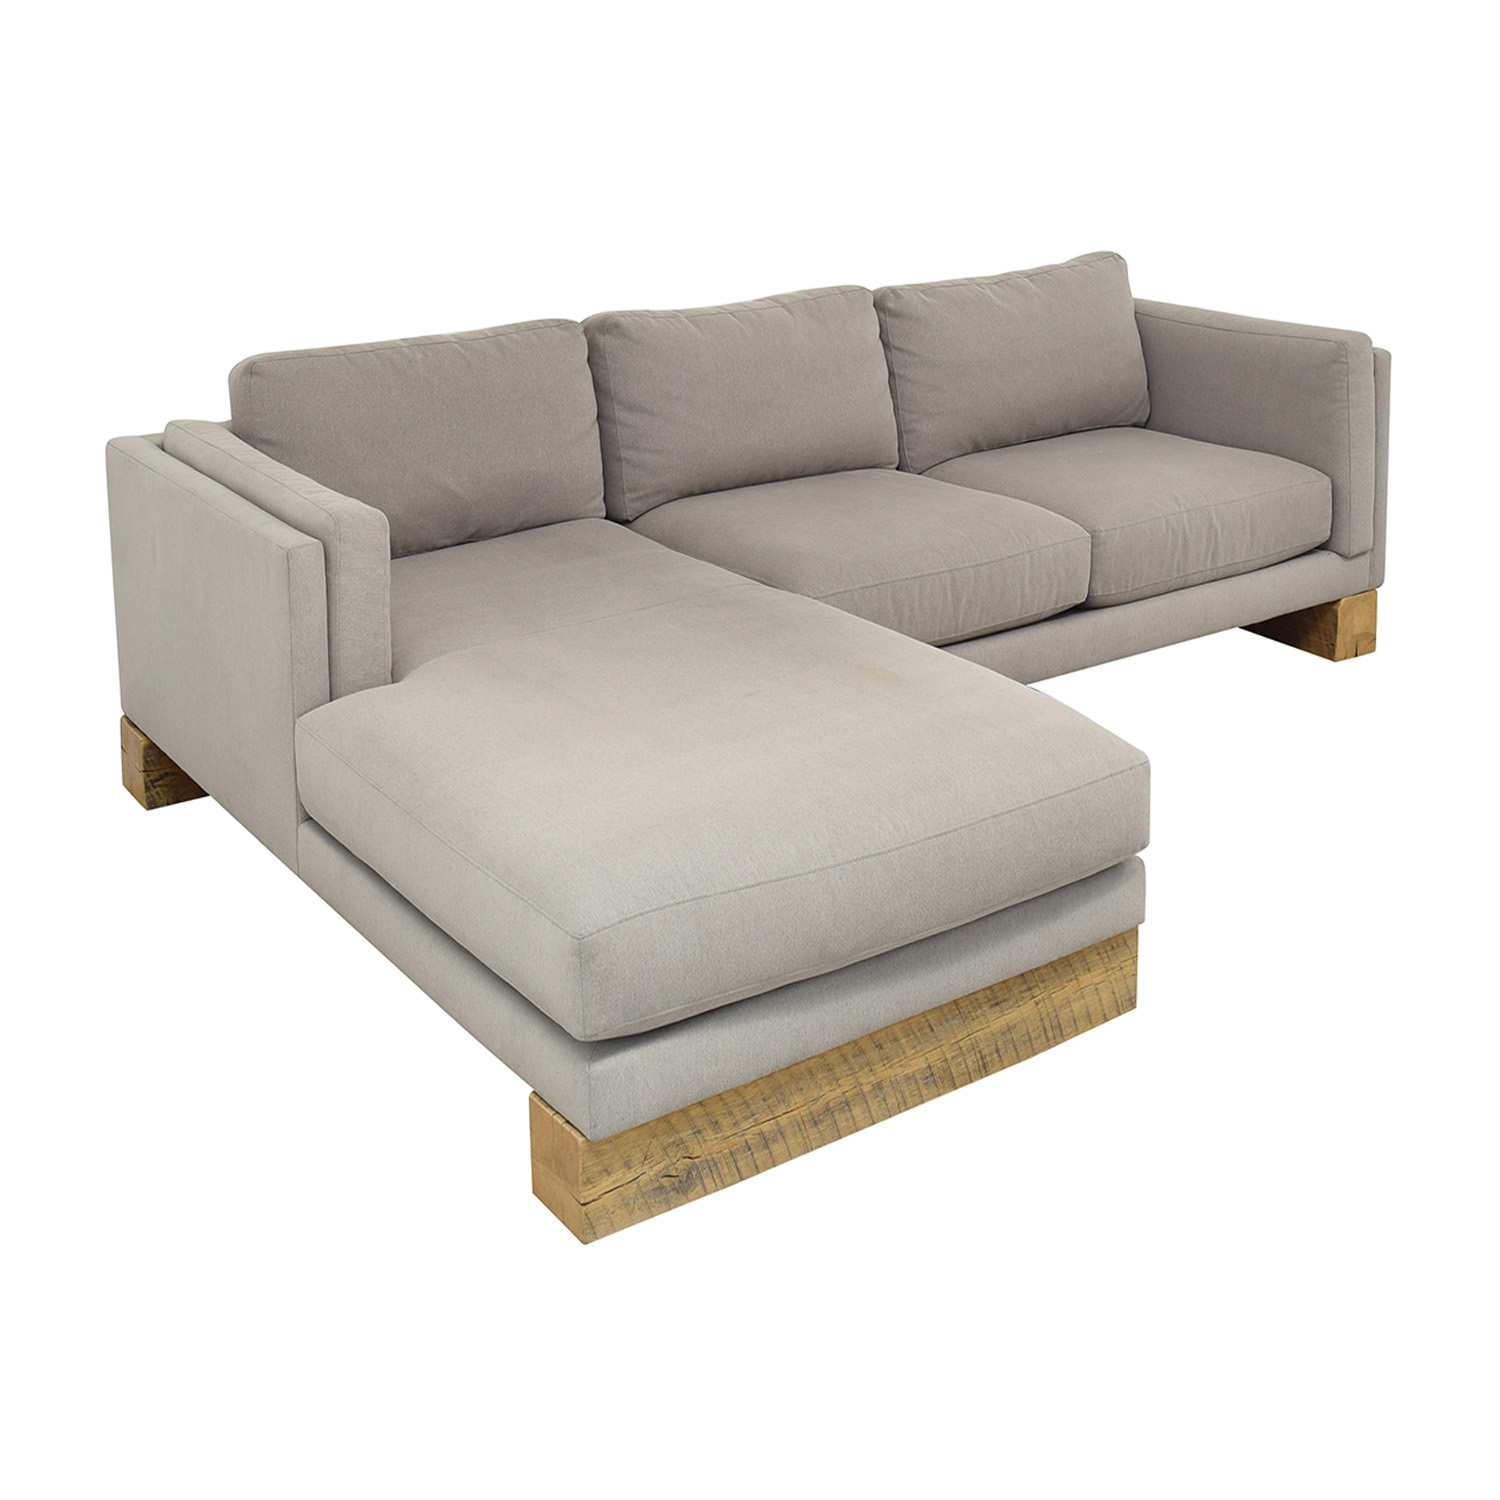 Room & Board Room & Board Custom Sectional with Railroad Ties coupon